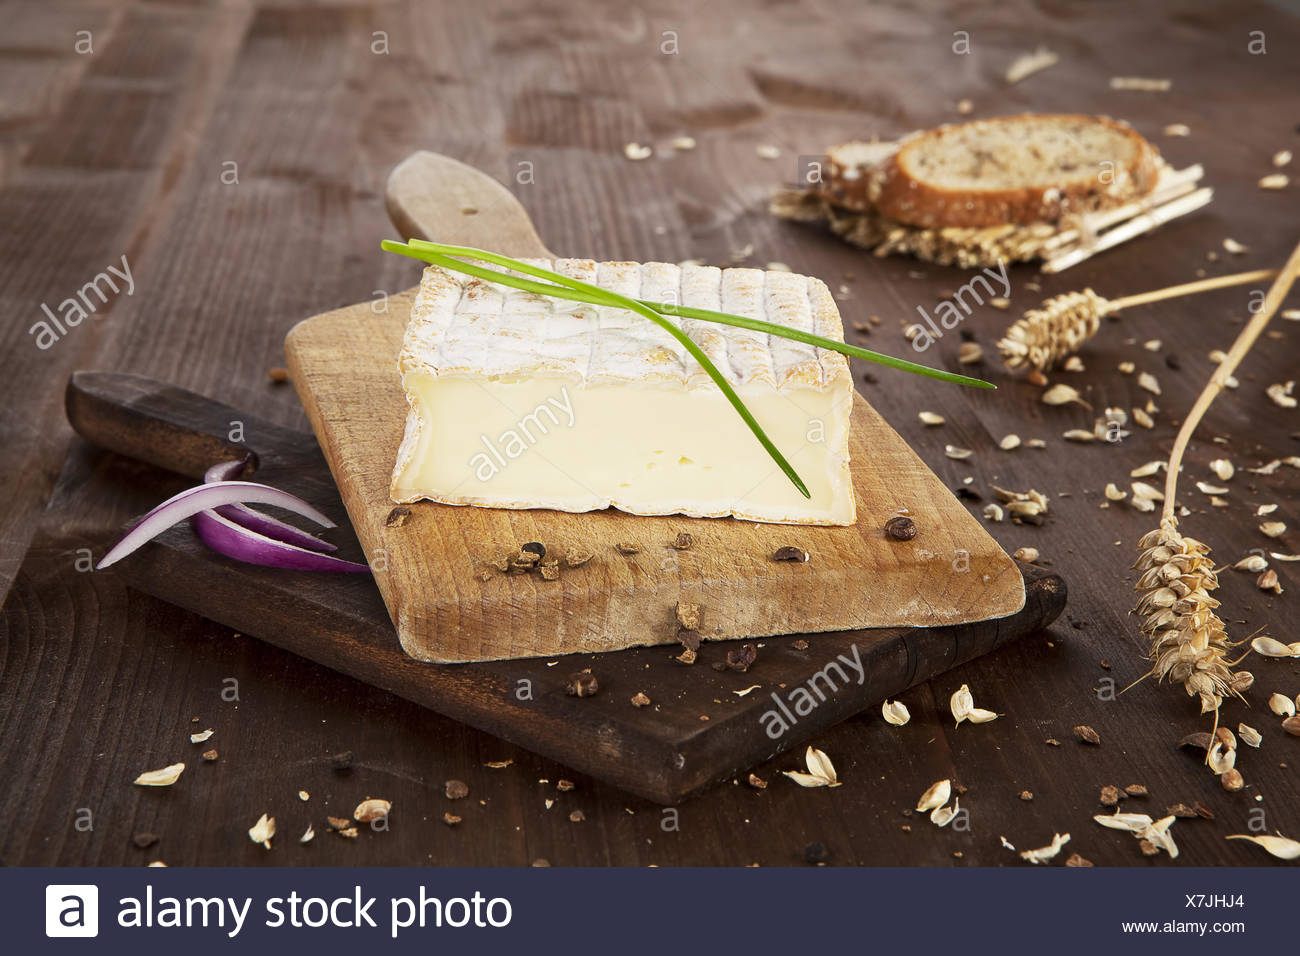 Luxurious cheese. - Stock Image